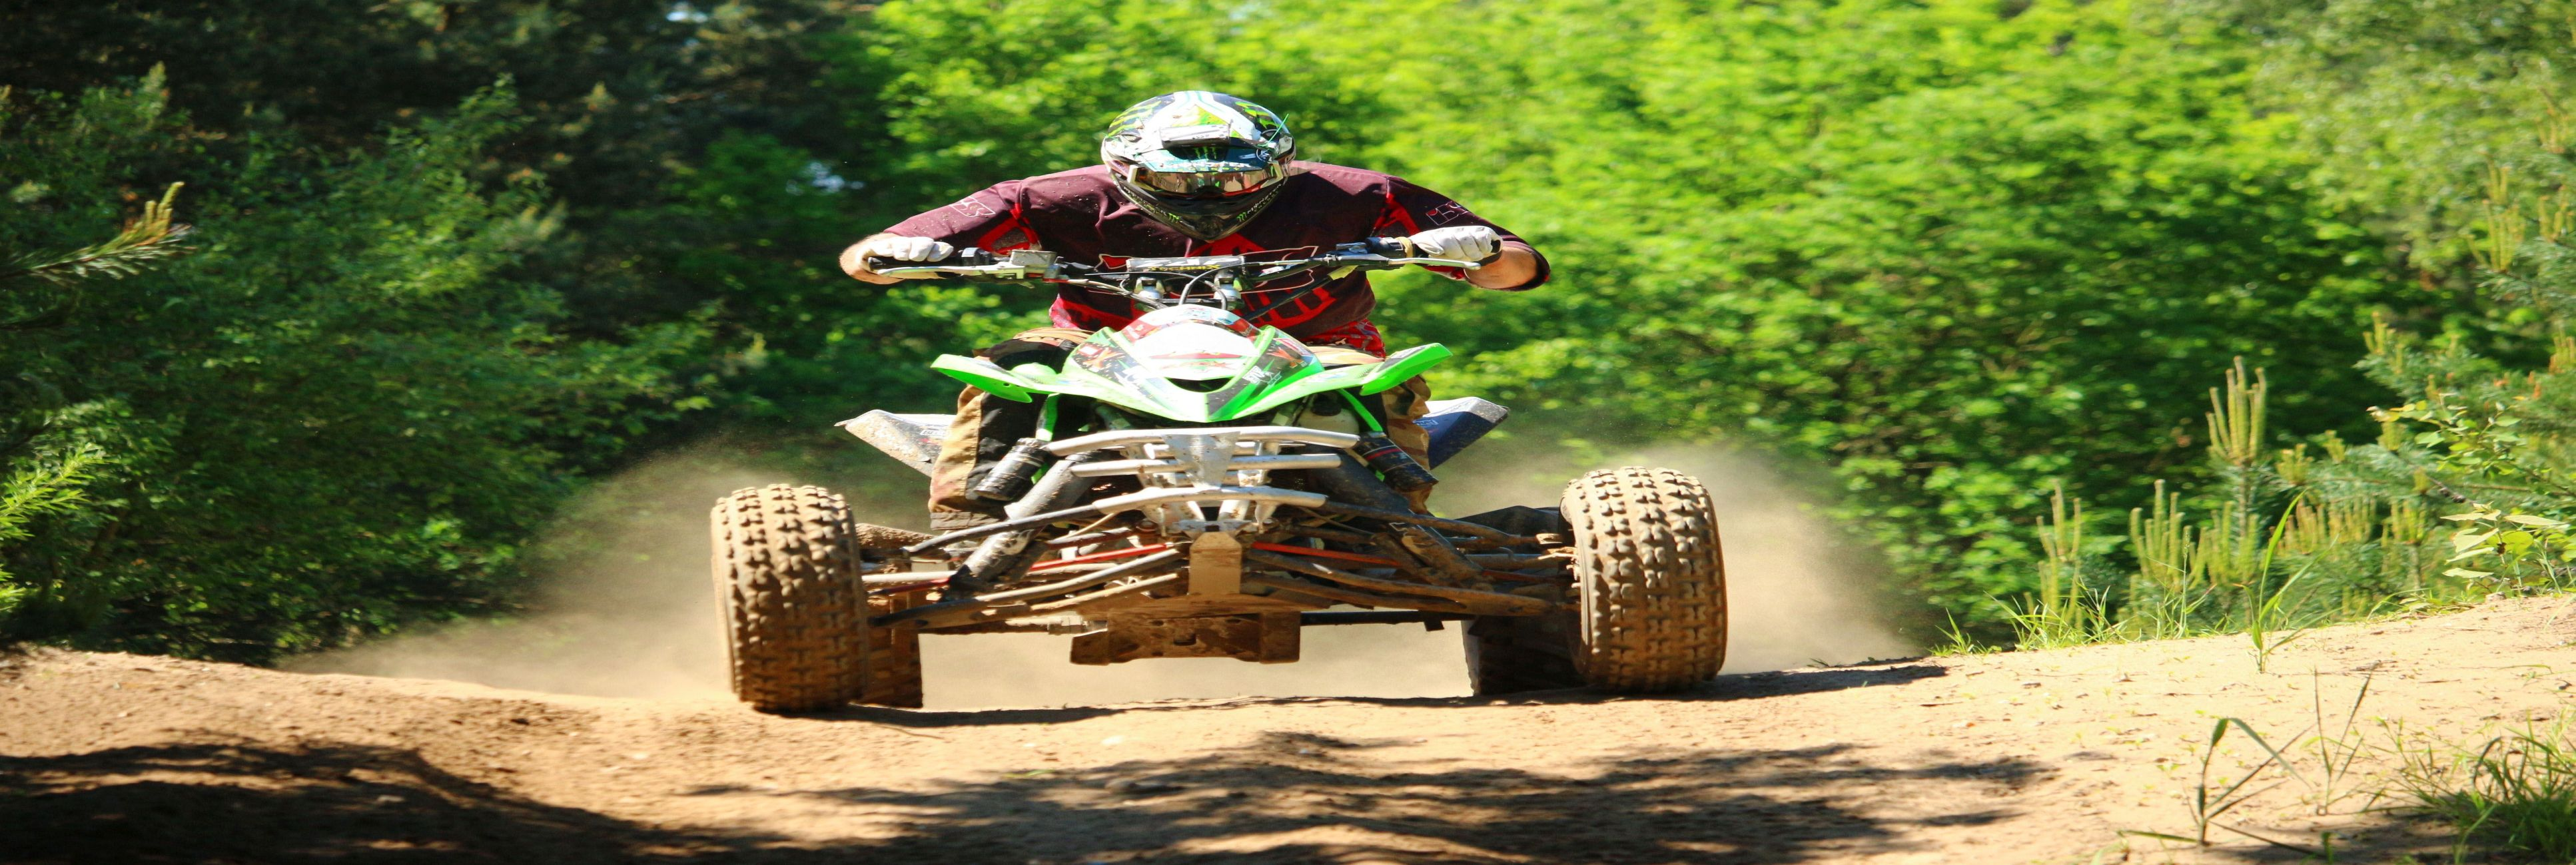 Quad bike insurance quotes